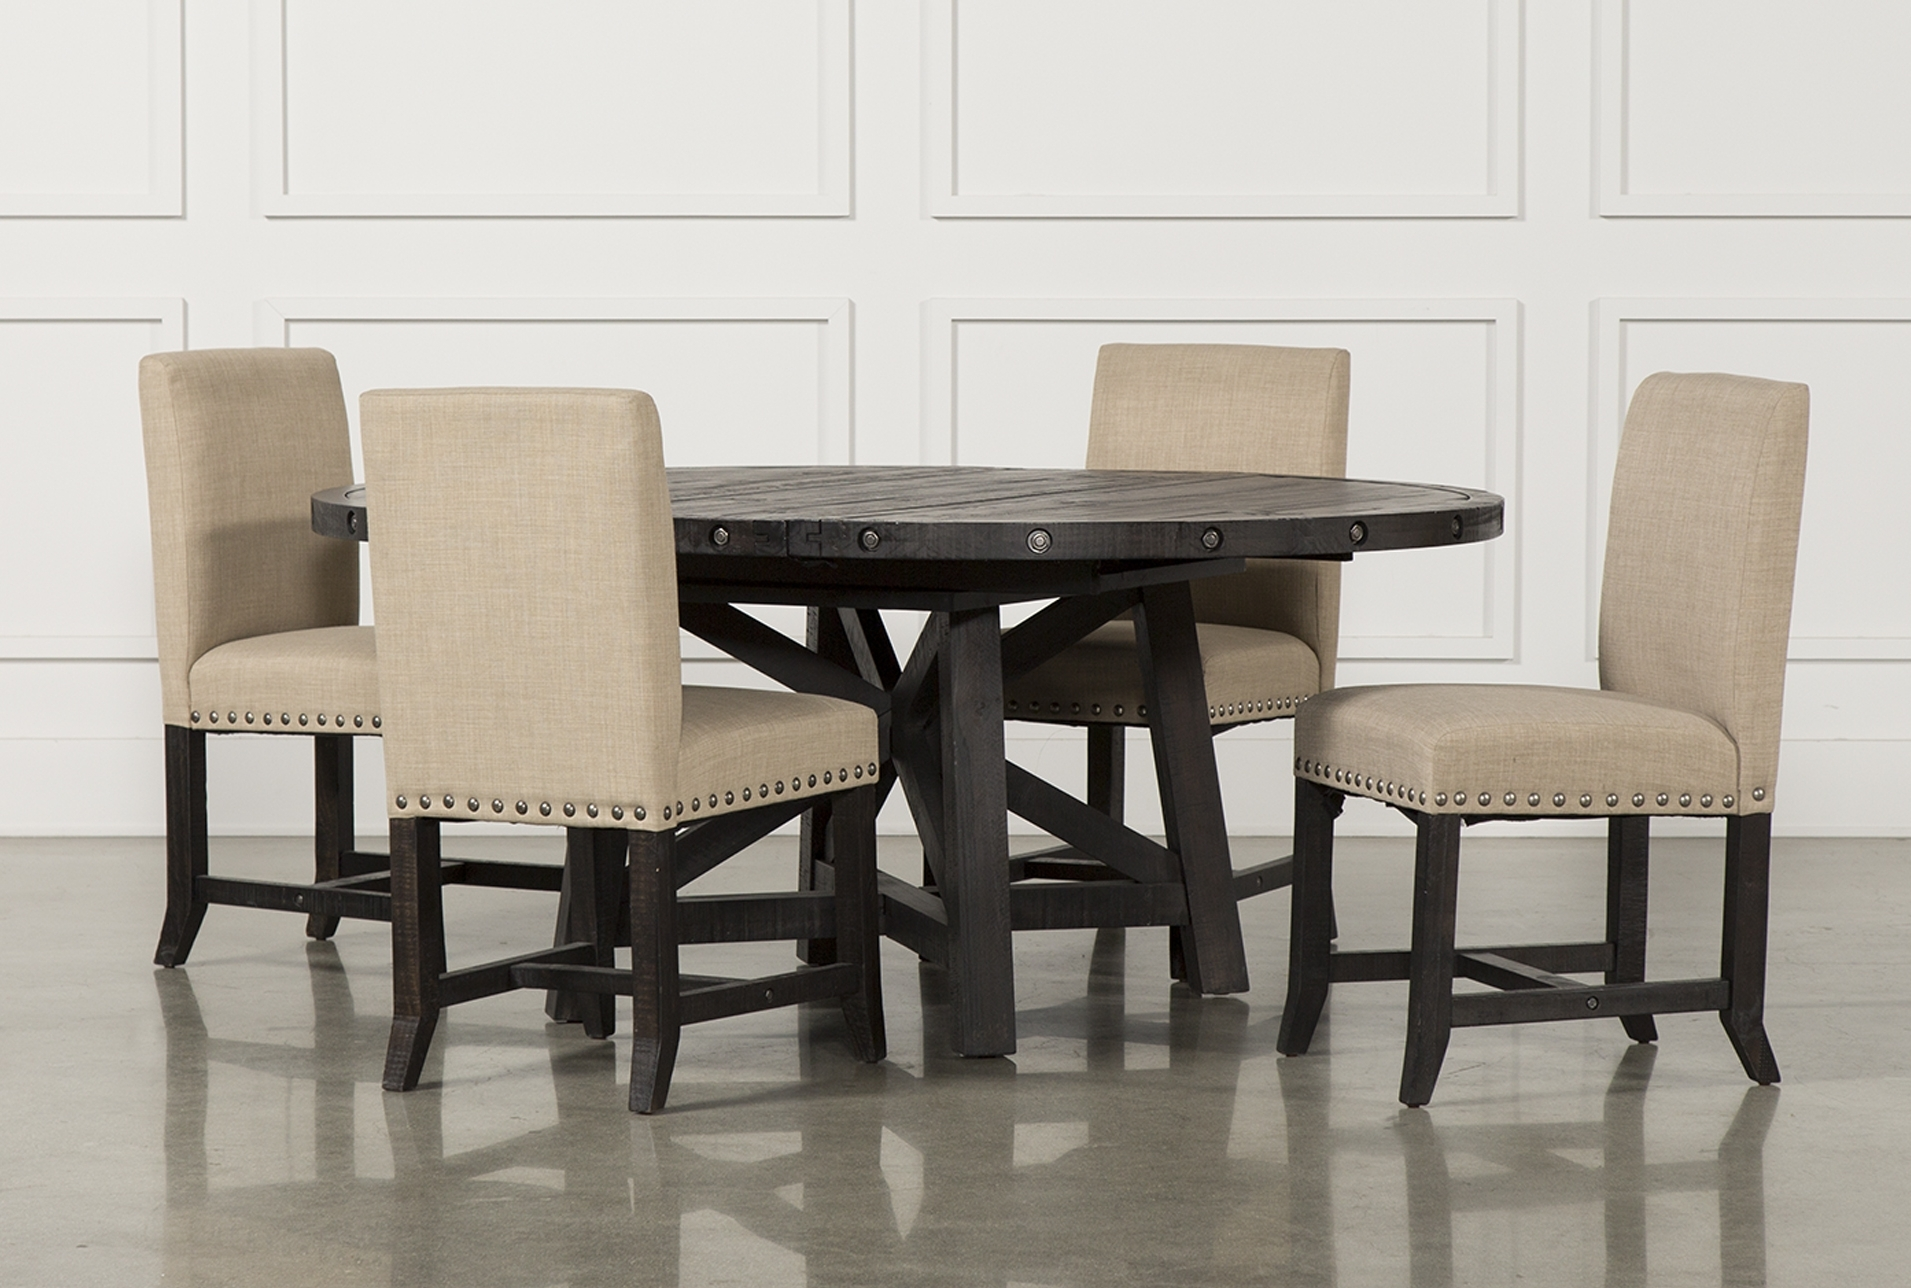 2017 Jaxon Grey Upholstered Side Chairs Regarding 5. Jaxon 5 Piece Round Dining Set W Upholstered Chairs Qty 1 Has (Gallery 9 of 20)